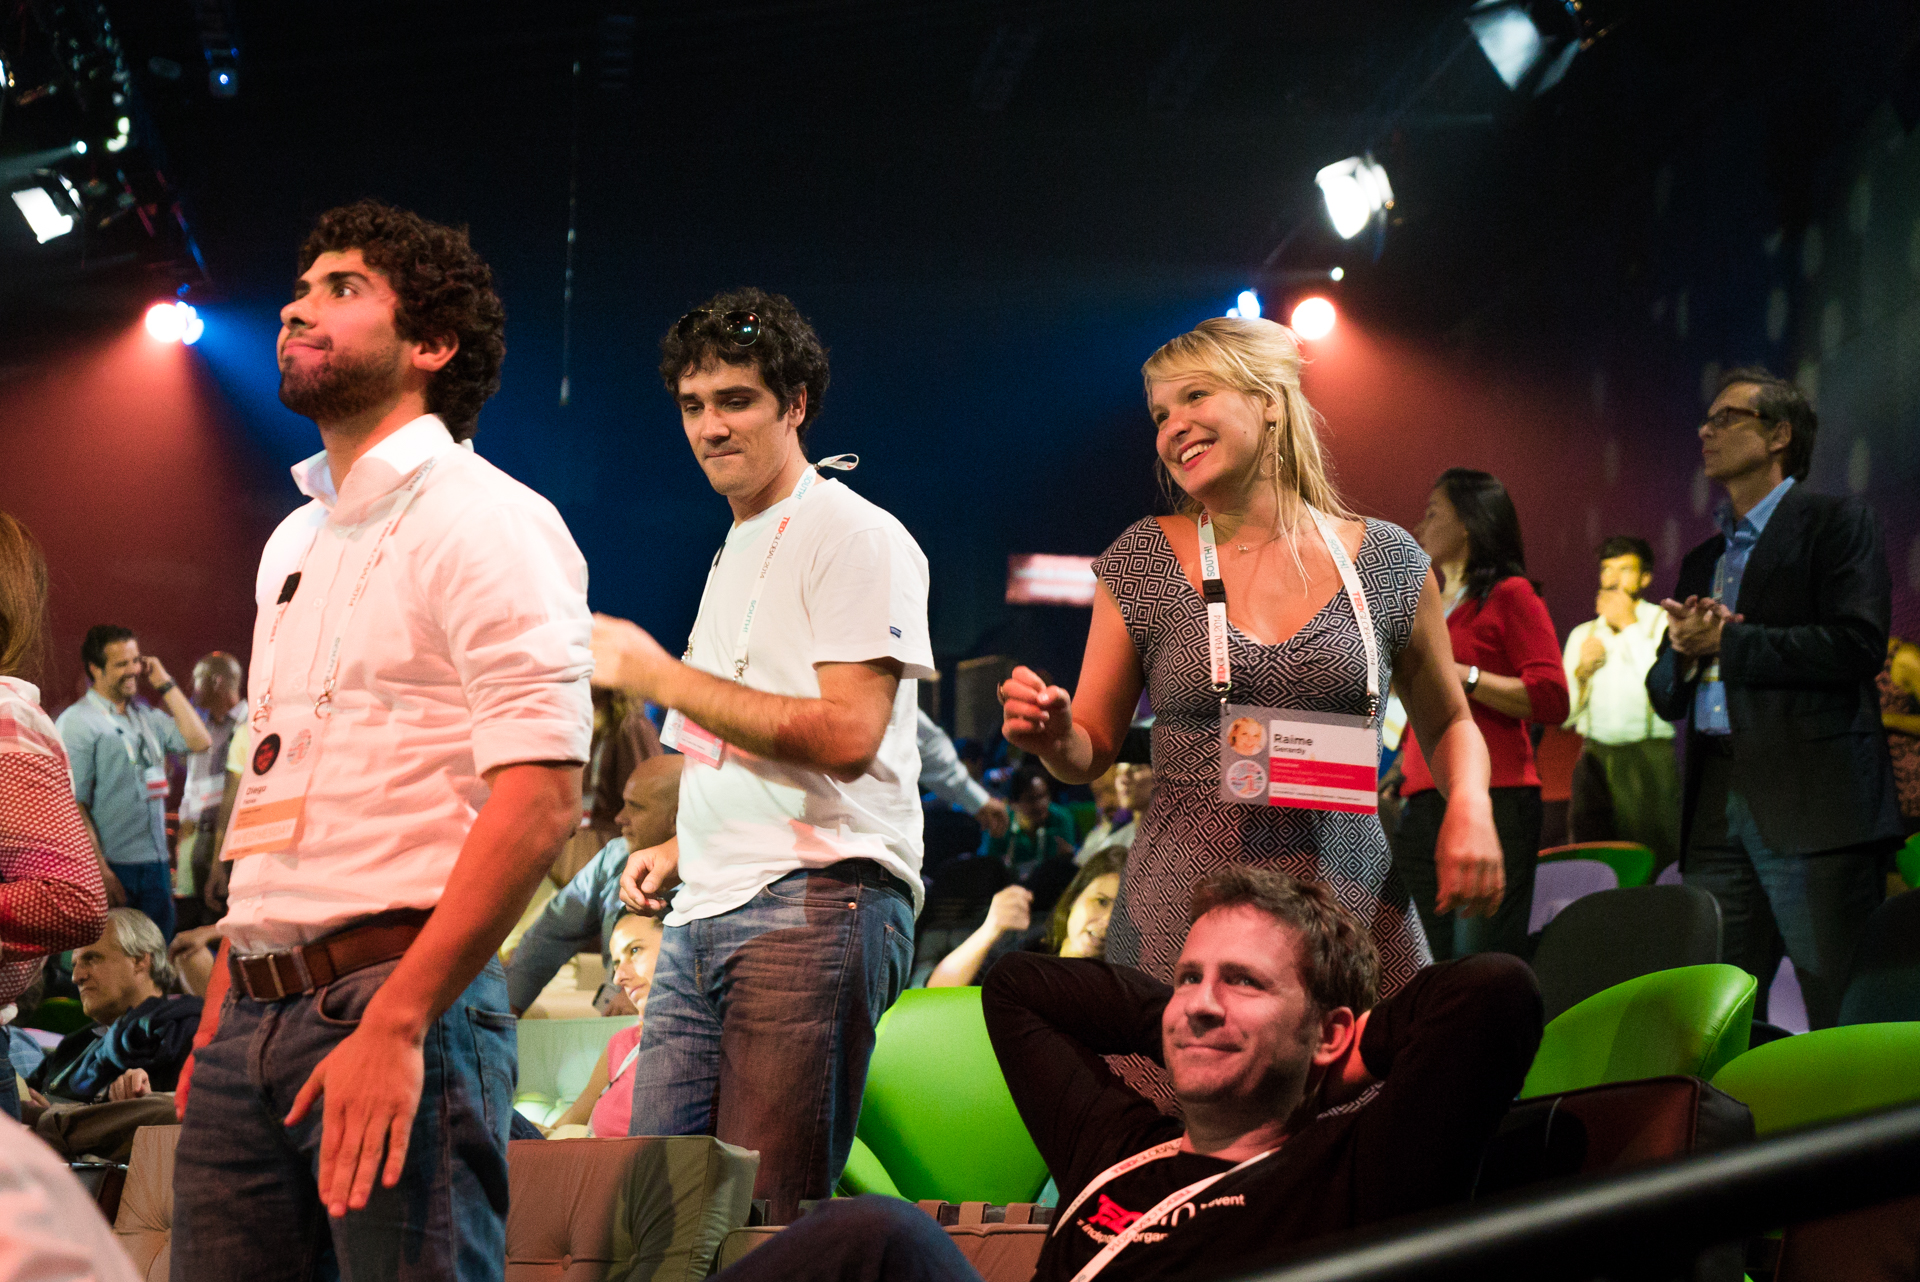 Audience members dance to music by Casuarina at TEDGlobal 2014.